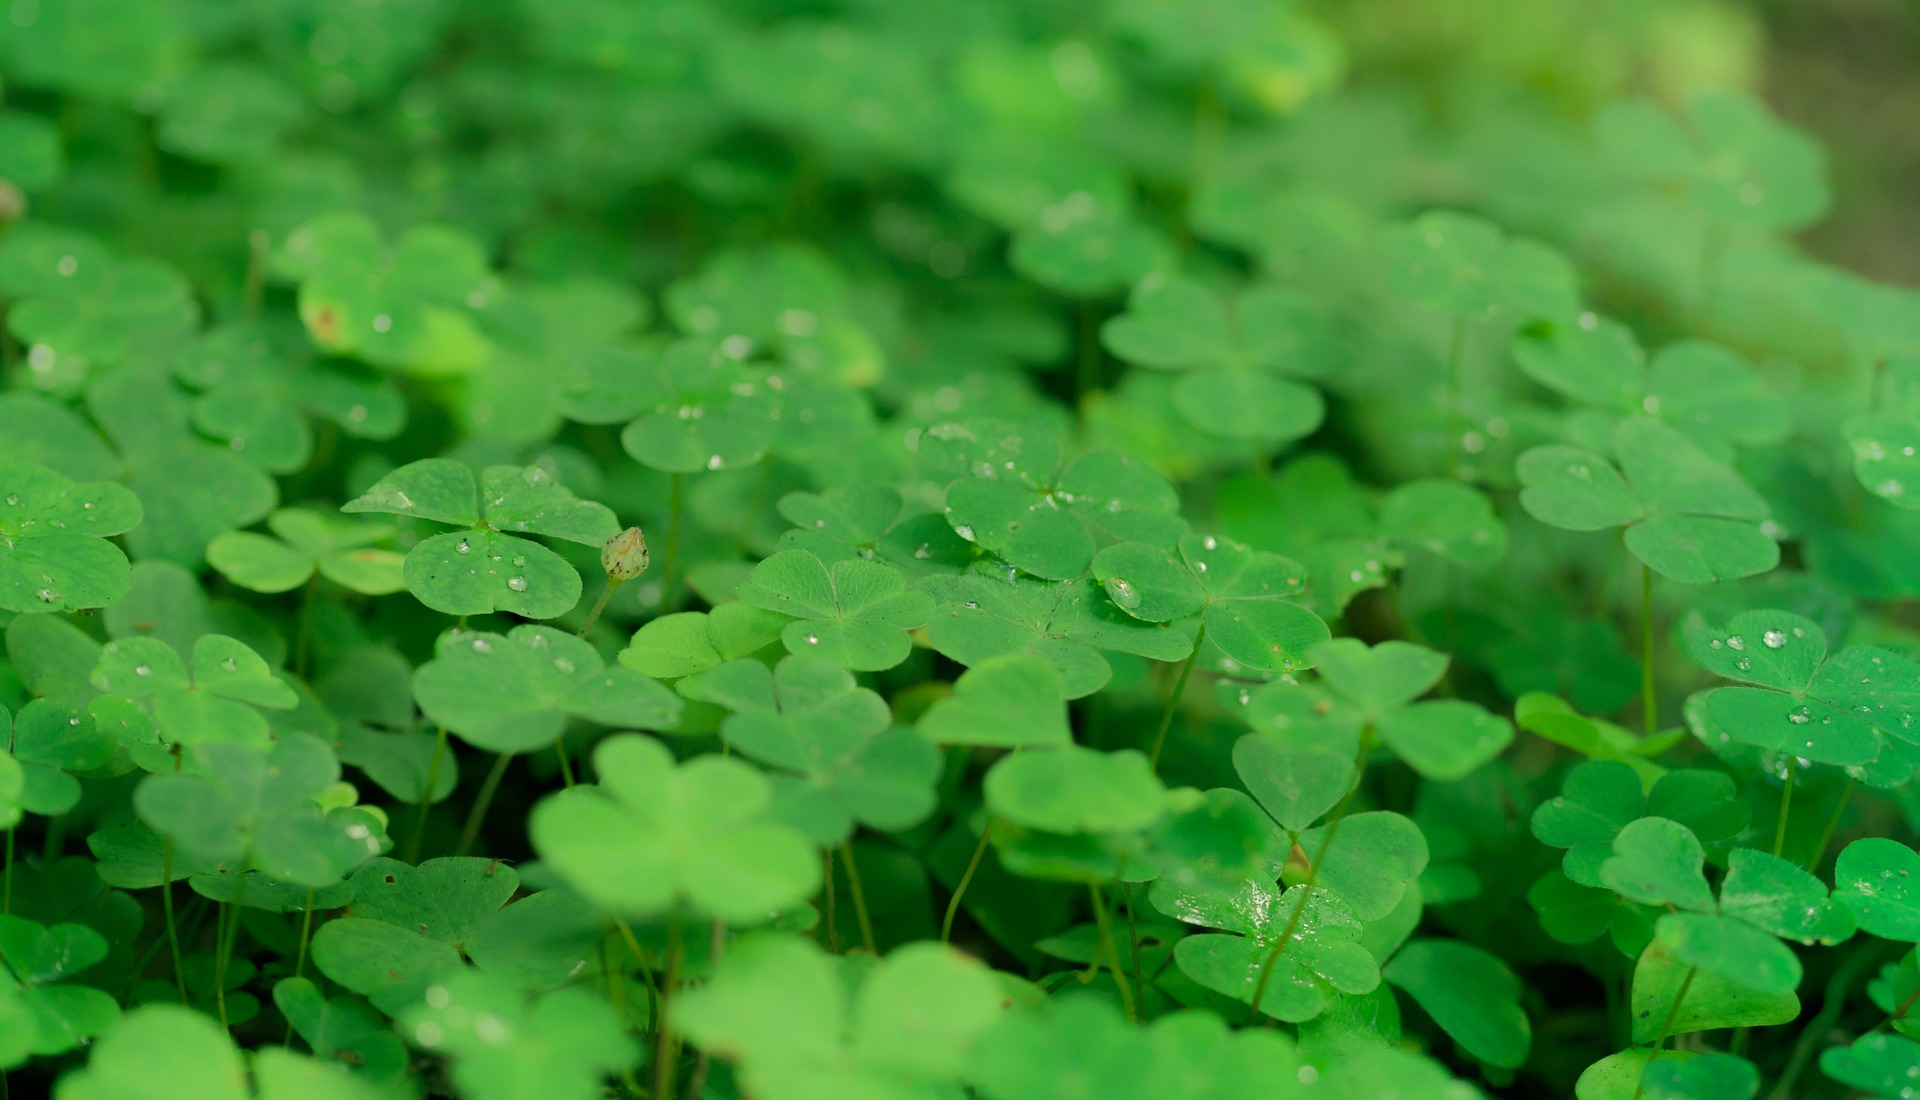 """ Klee, shamrocks, luck, nature "" by  Kathleen Bergmann  is  Public Domain ."